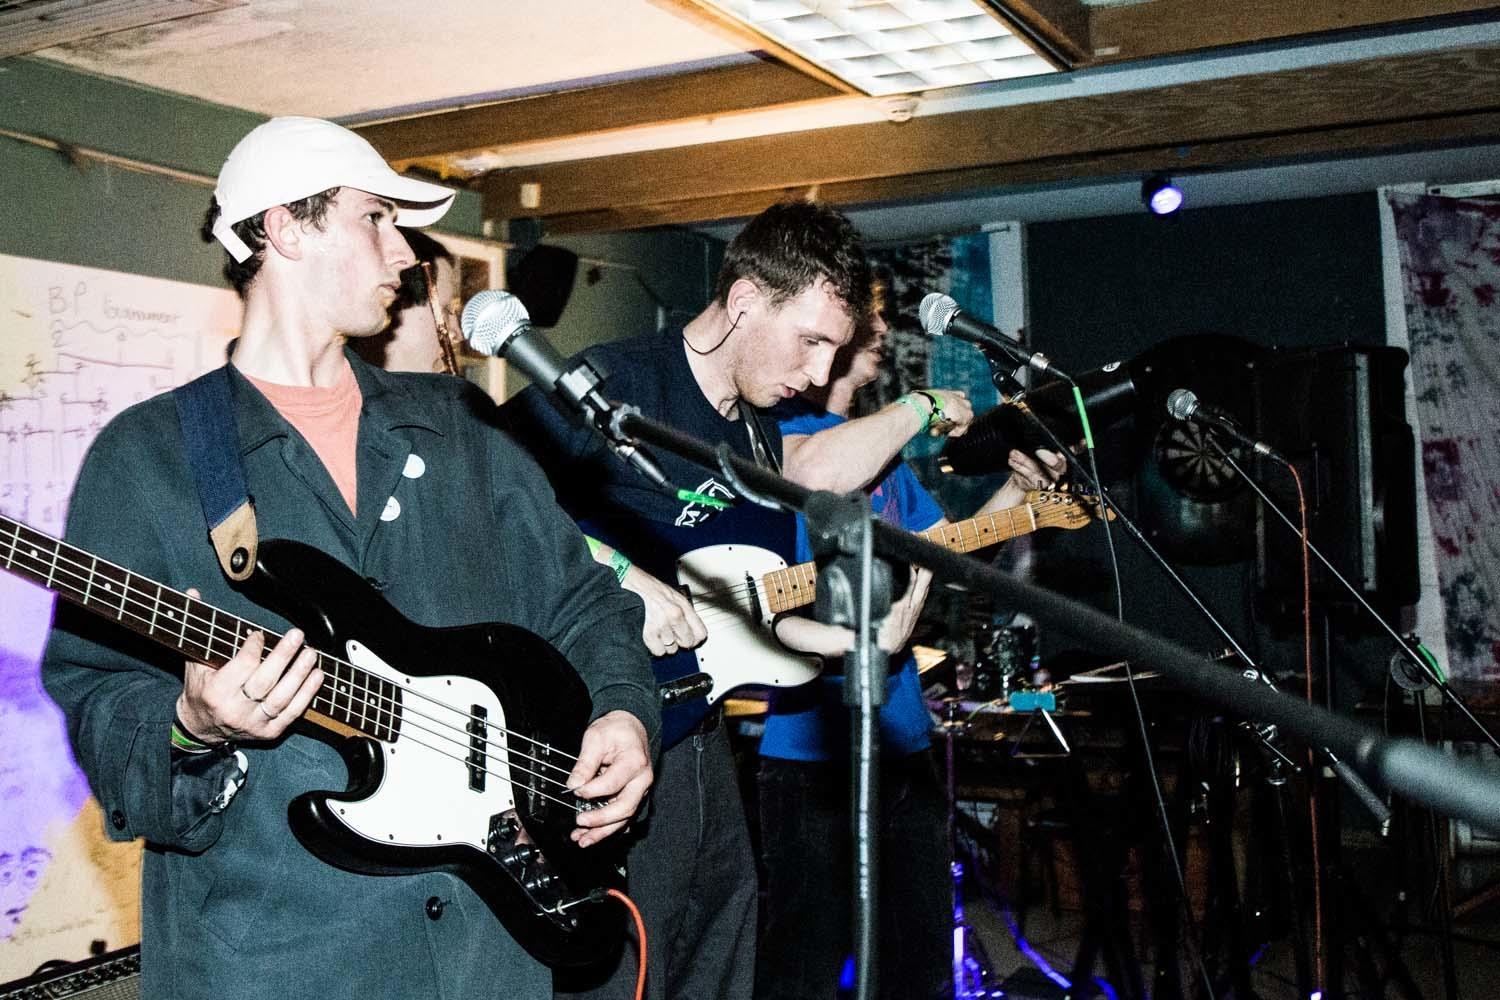 Squid, Priests, Crack Cloud & more to play DIY's stage at The Great Escape 2019